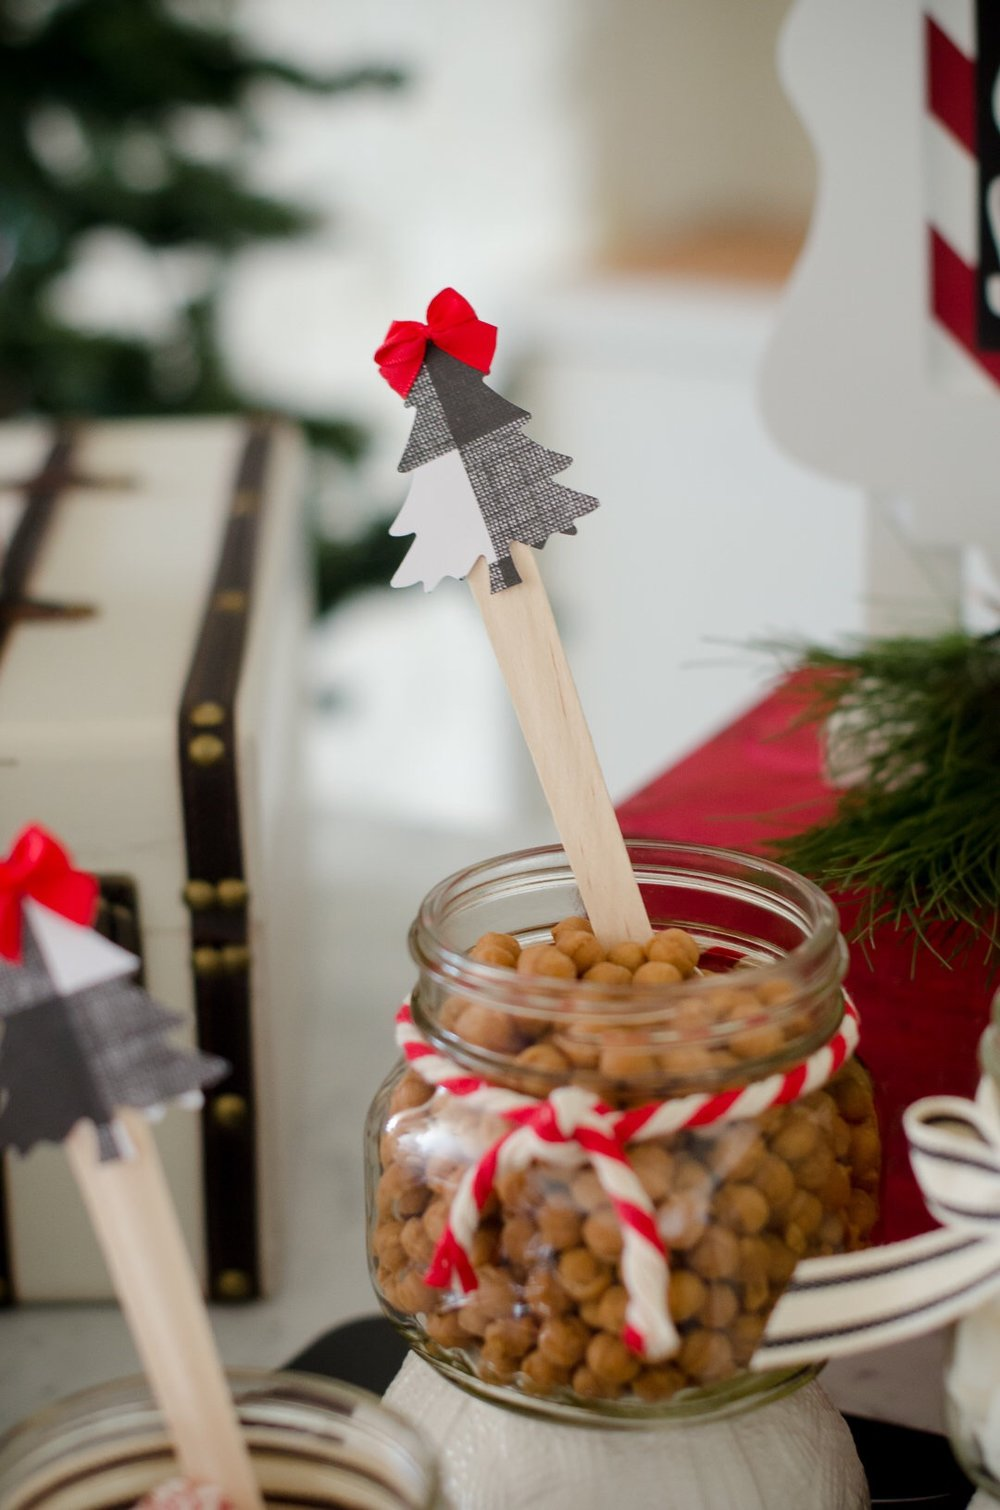 Caramel bit toppings at a Christmas Hot Cocoa Station are a surprise for your guests. See more holiday party inspiration from Austin based party stylist Mint Event Design at www.minteventdesign.com #holidayparty #holidays #partyideas #christmasparty #holidaypartyideas #hotcocoabar #hotcocoa